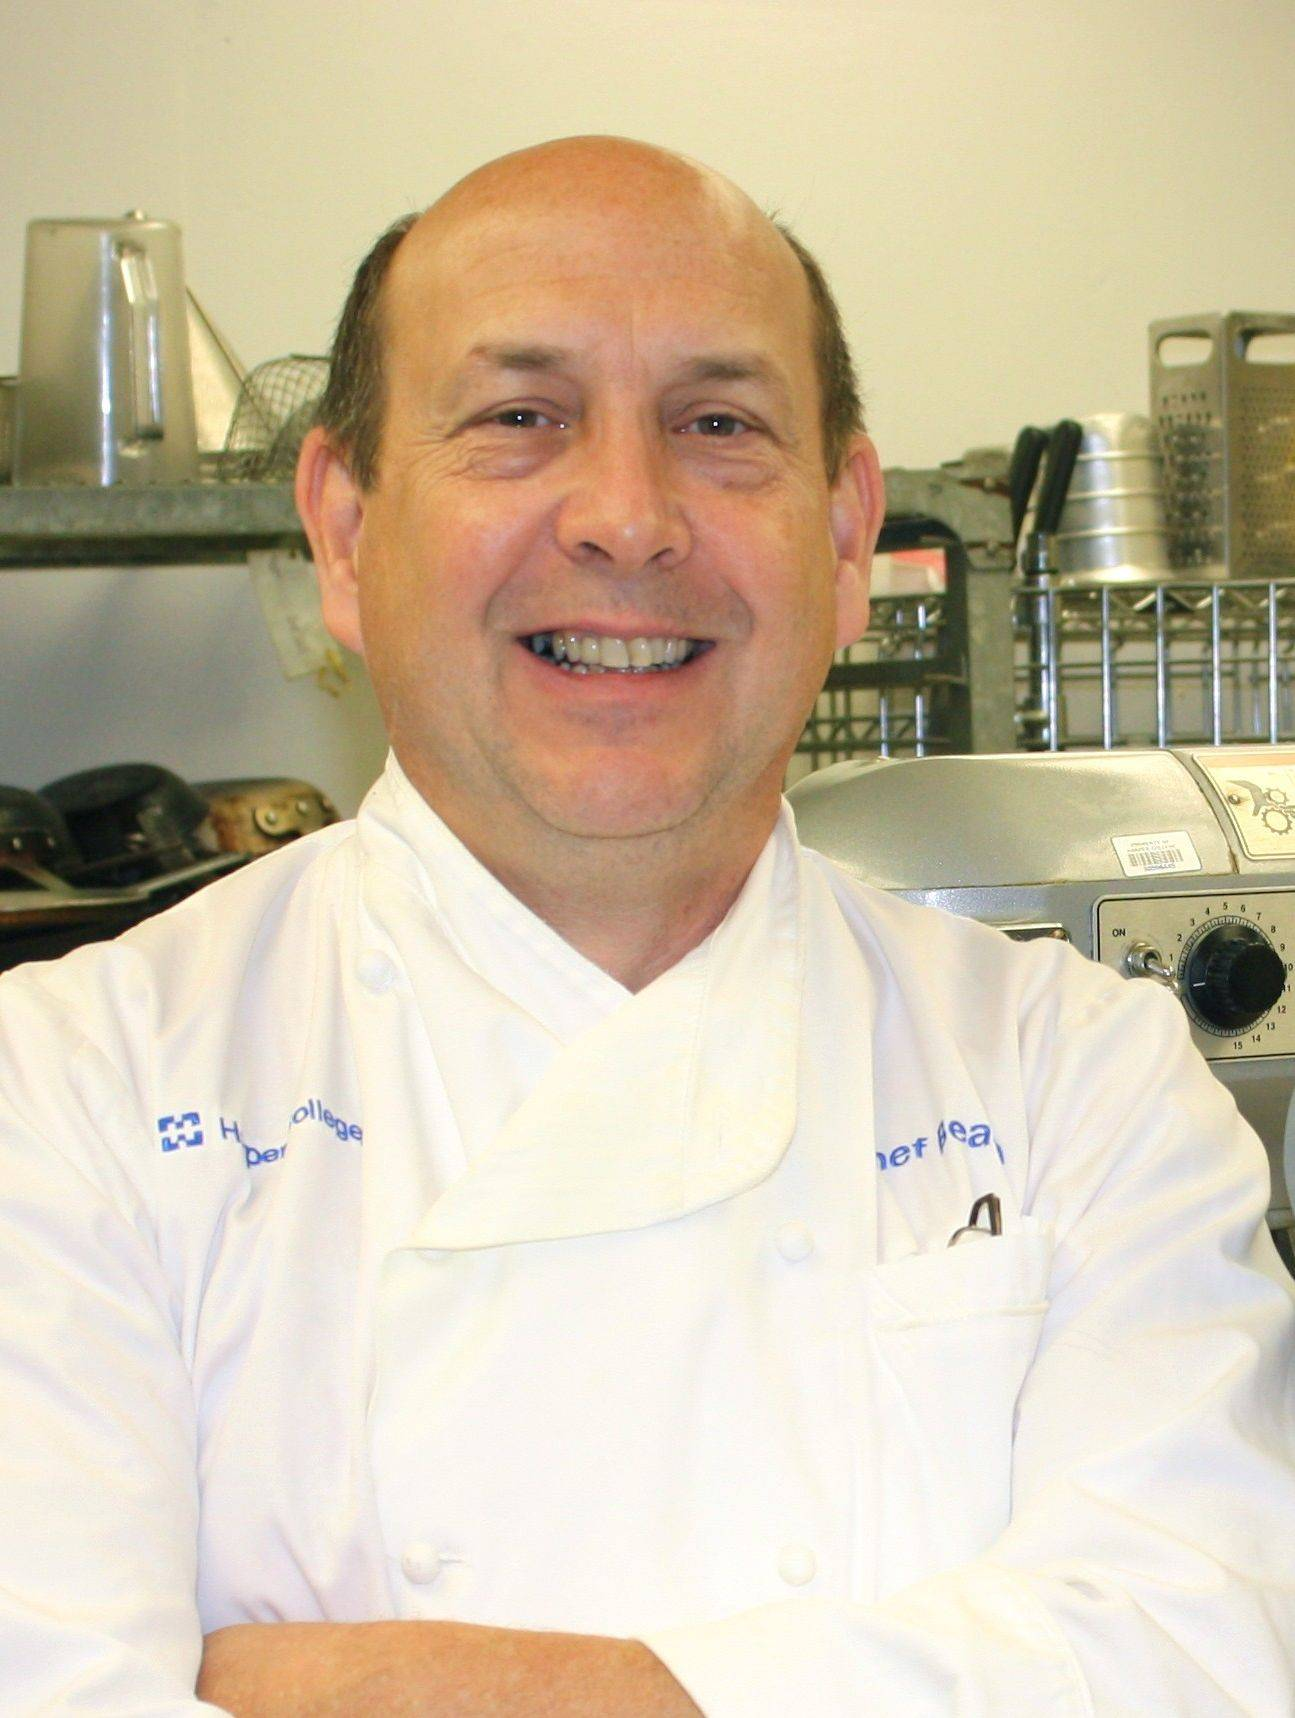 Chef/instructor Patrick Beach